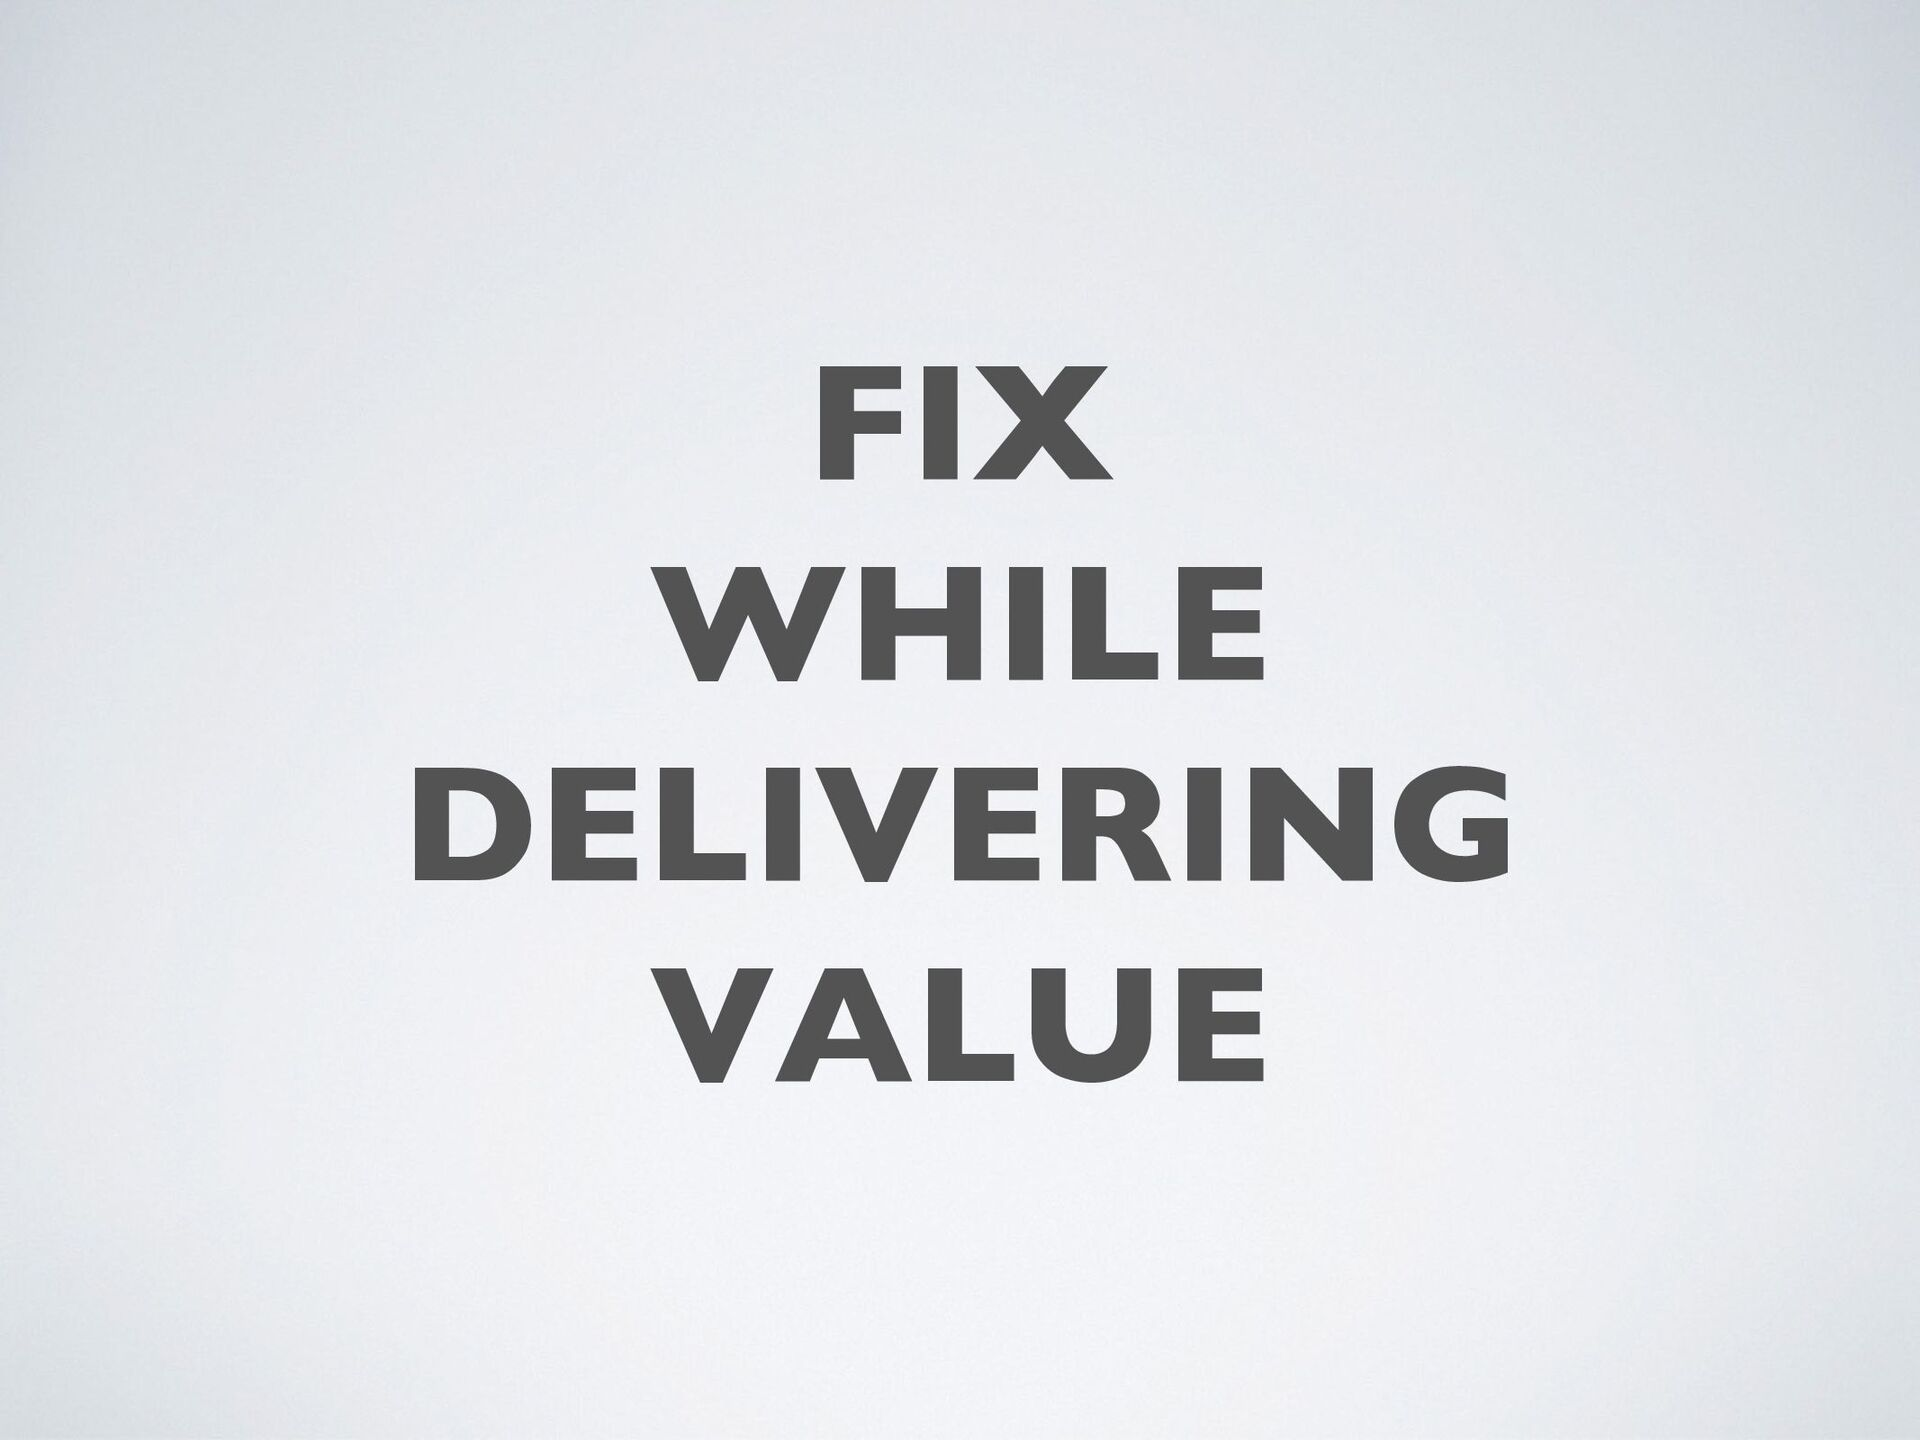 Can we fix? What do we fix? How do we fix? Do the ...